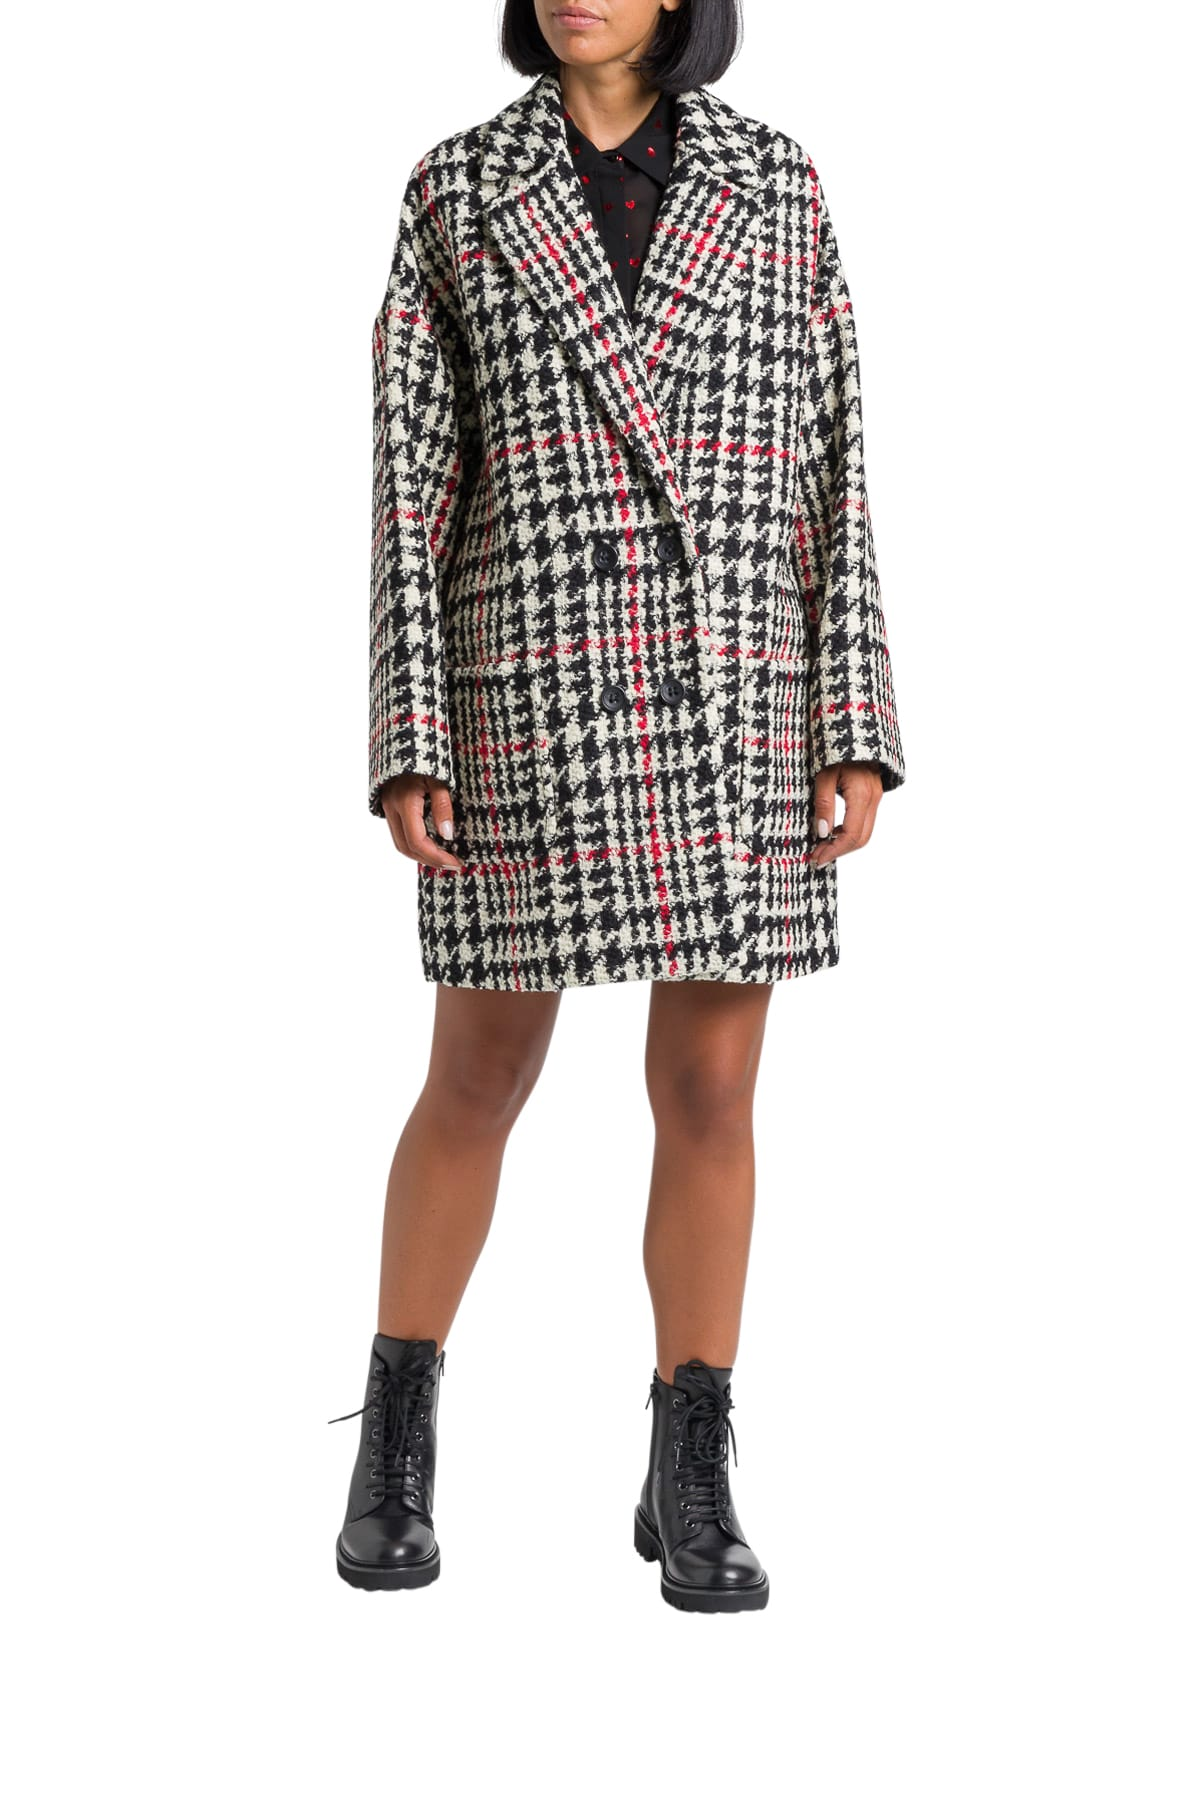 RED Valentino Piede-de-poule Oversized Kaban